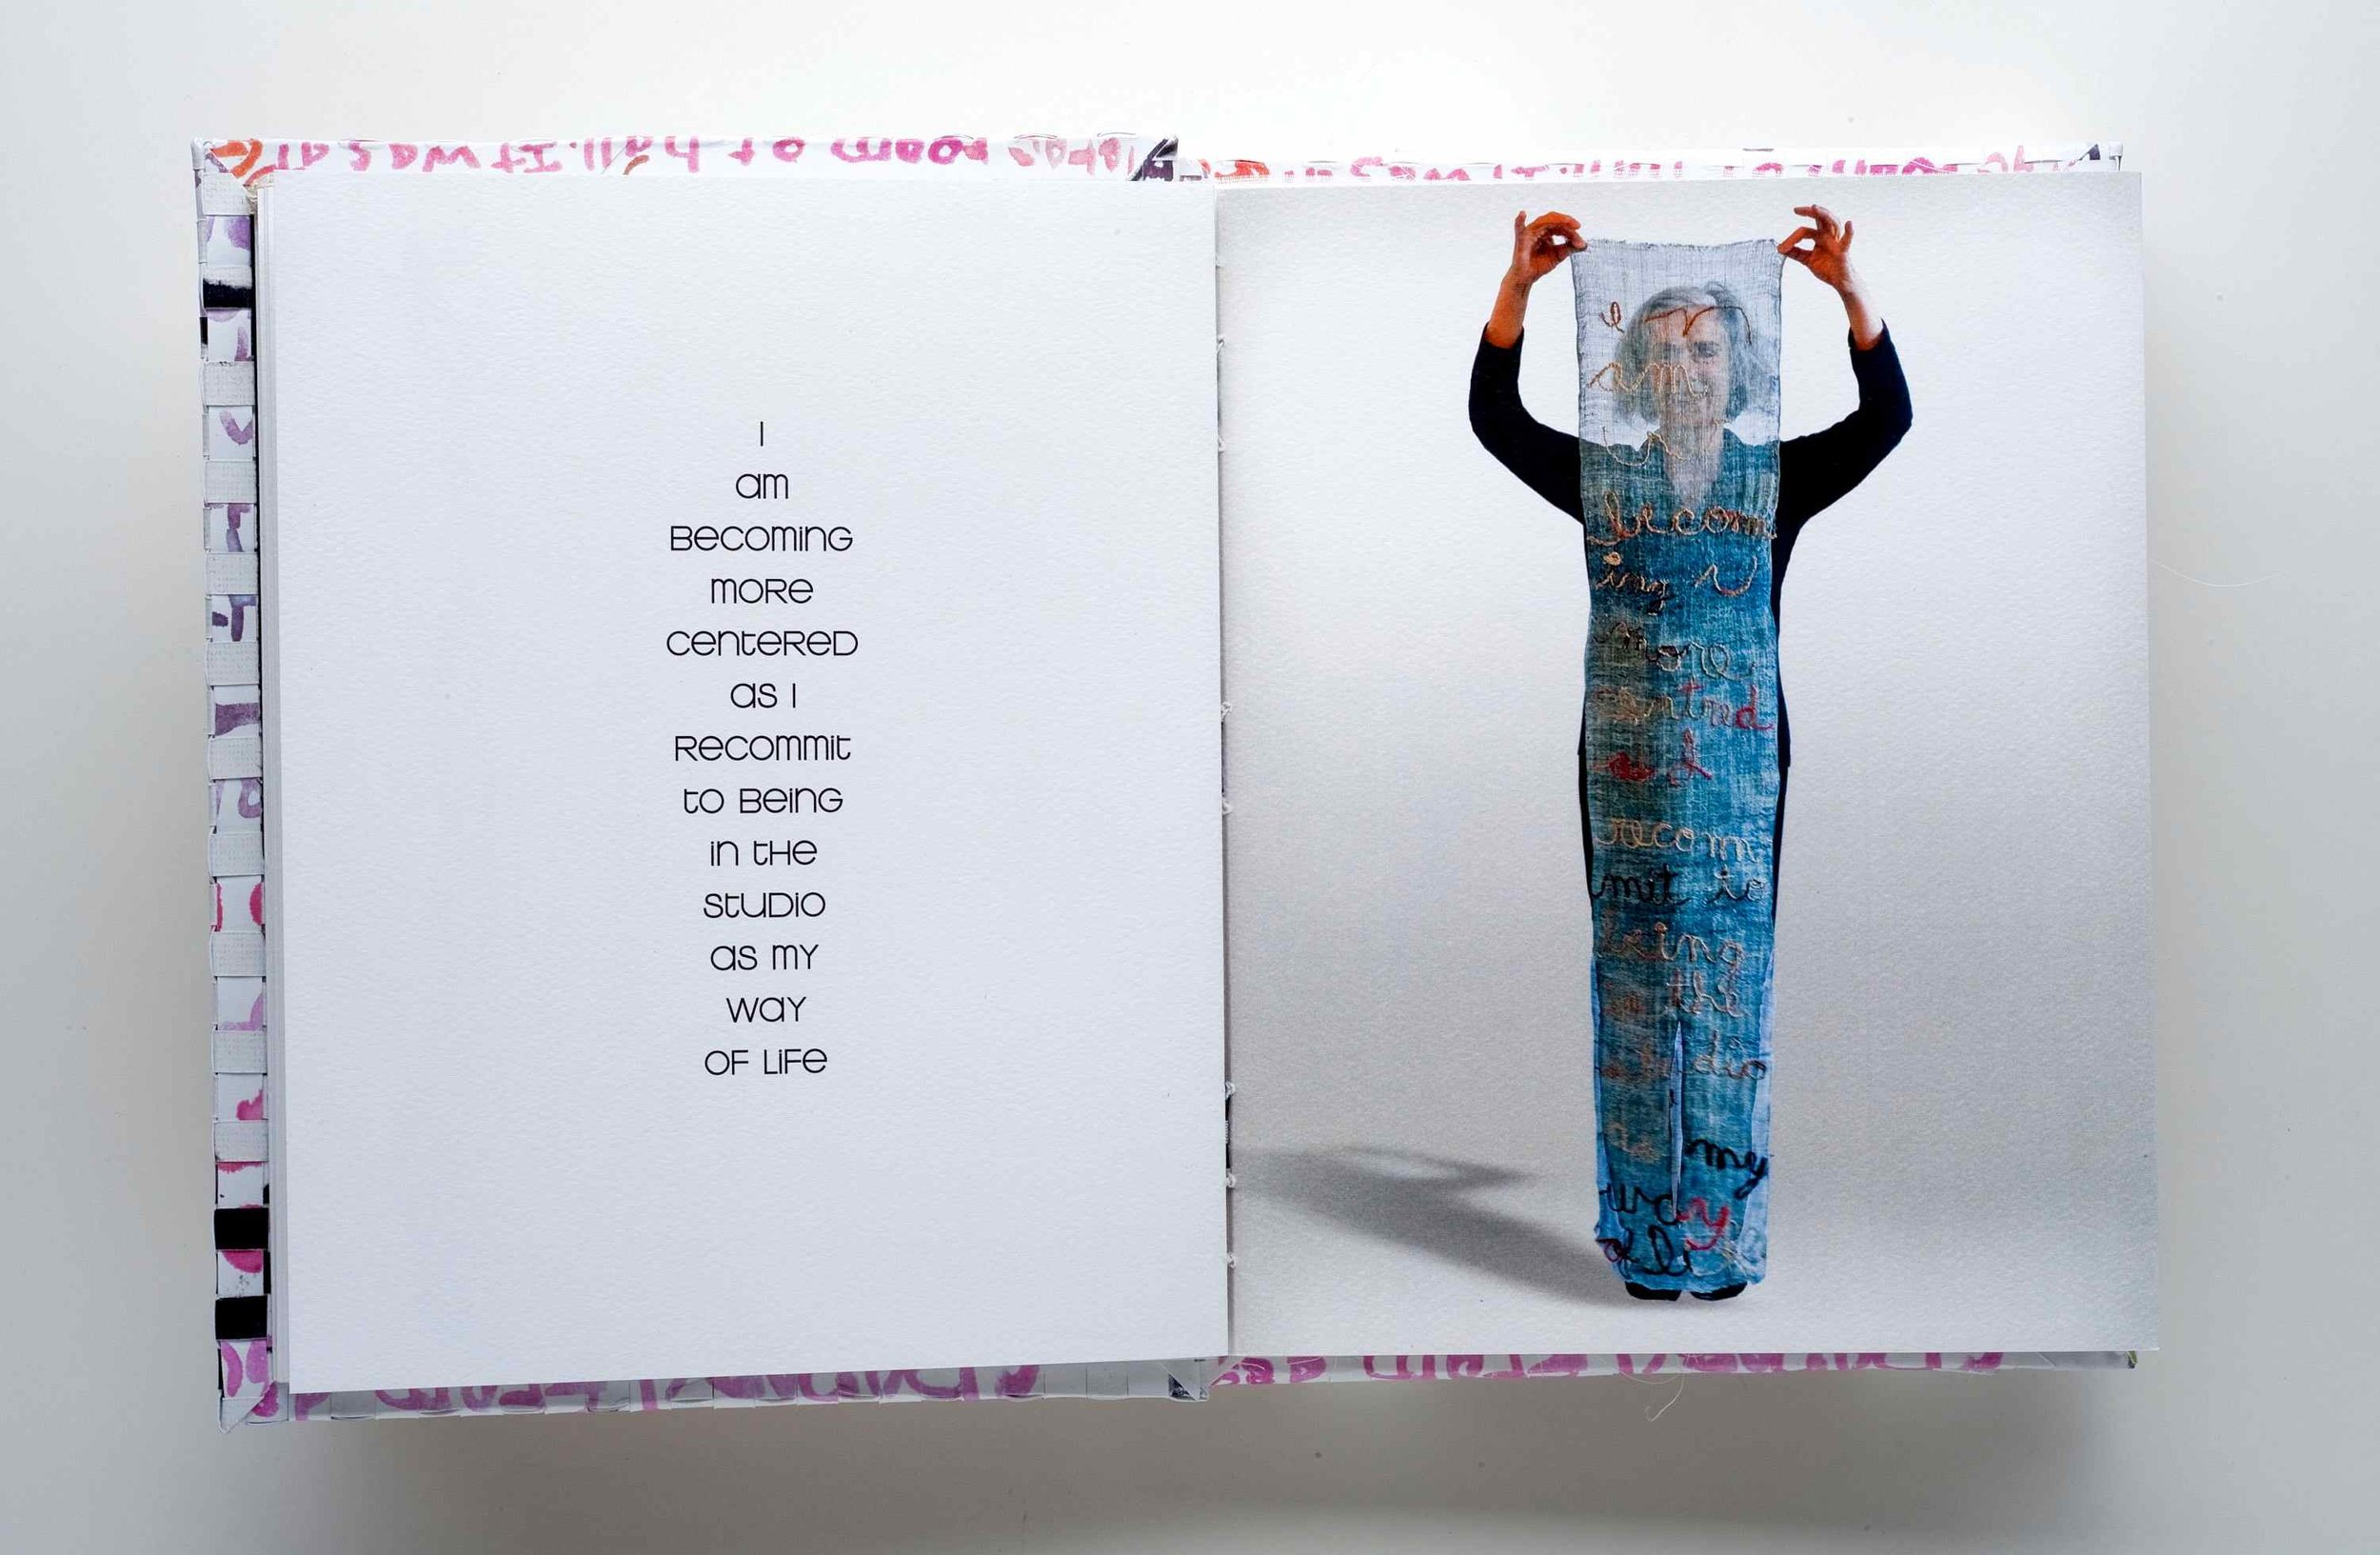 Departures & Returns, 2009, limited edition hand-sewn, limited edition paperback catalogues, 50.00 CAD